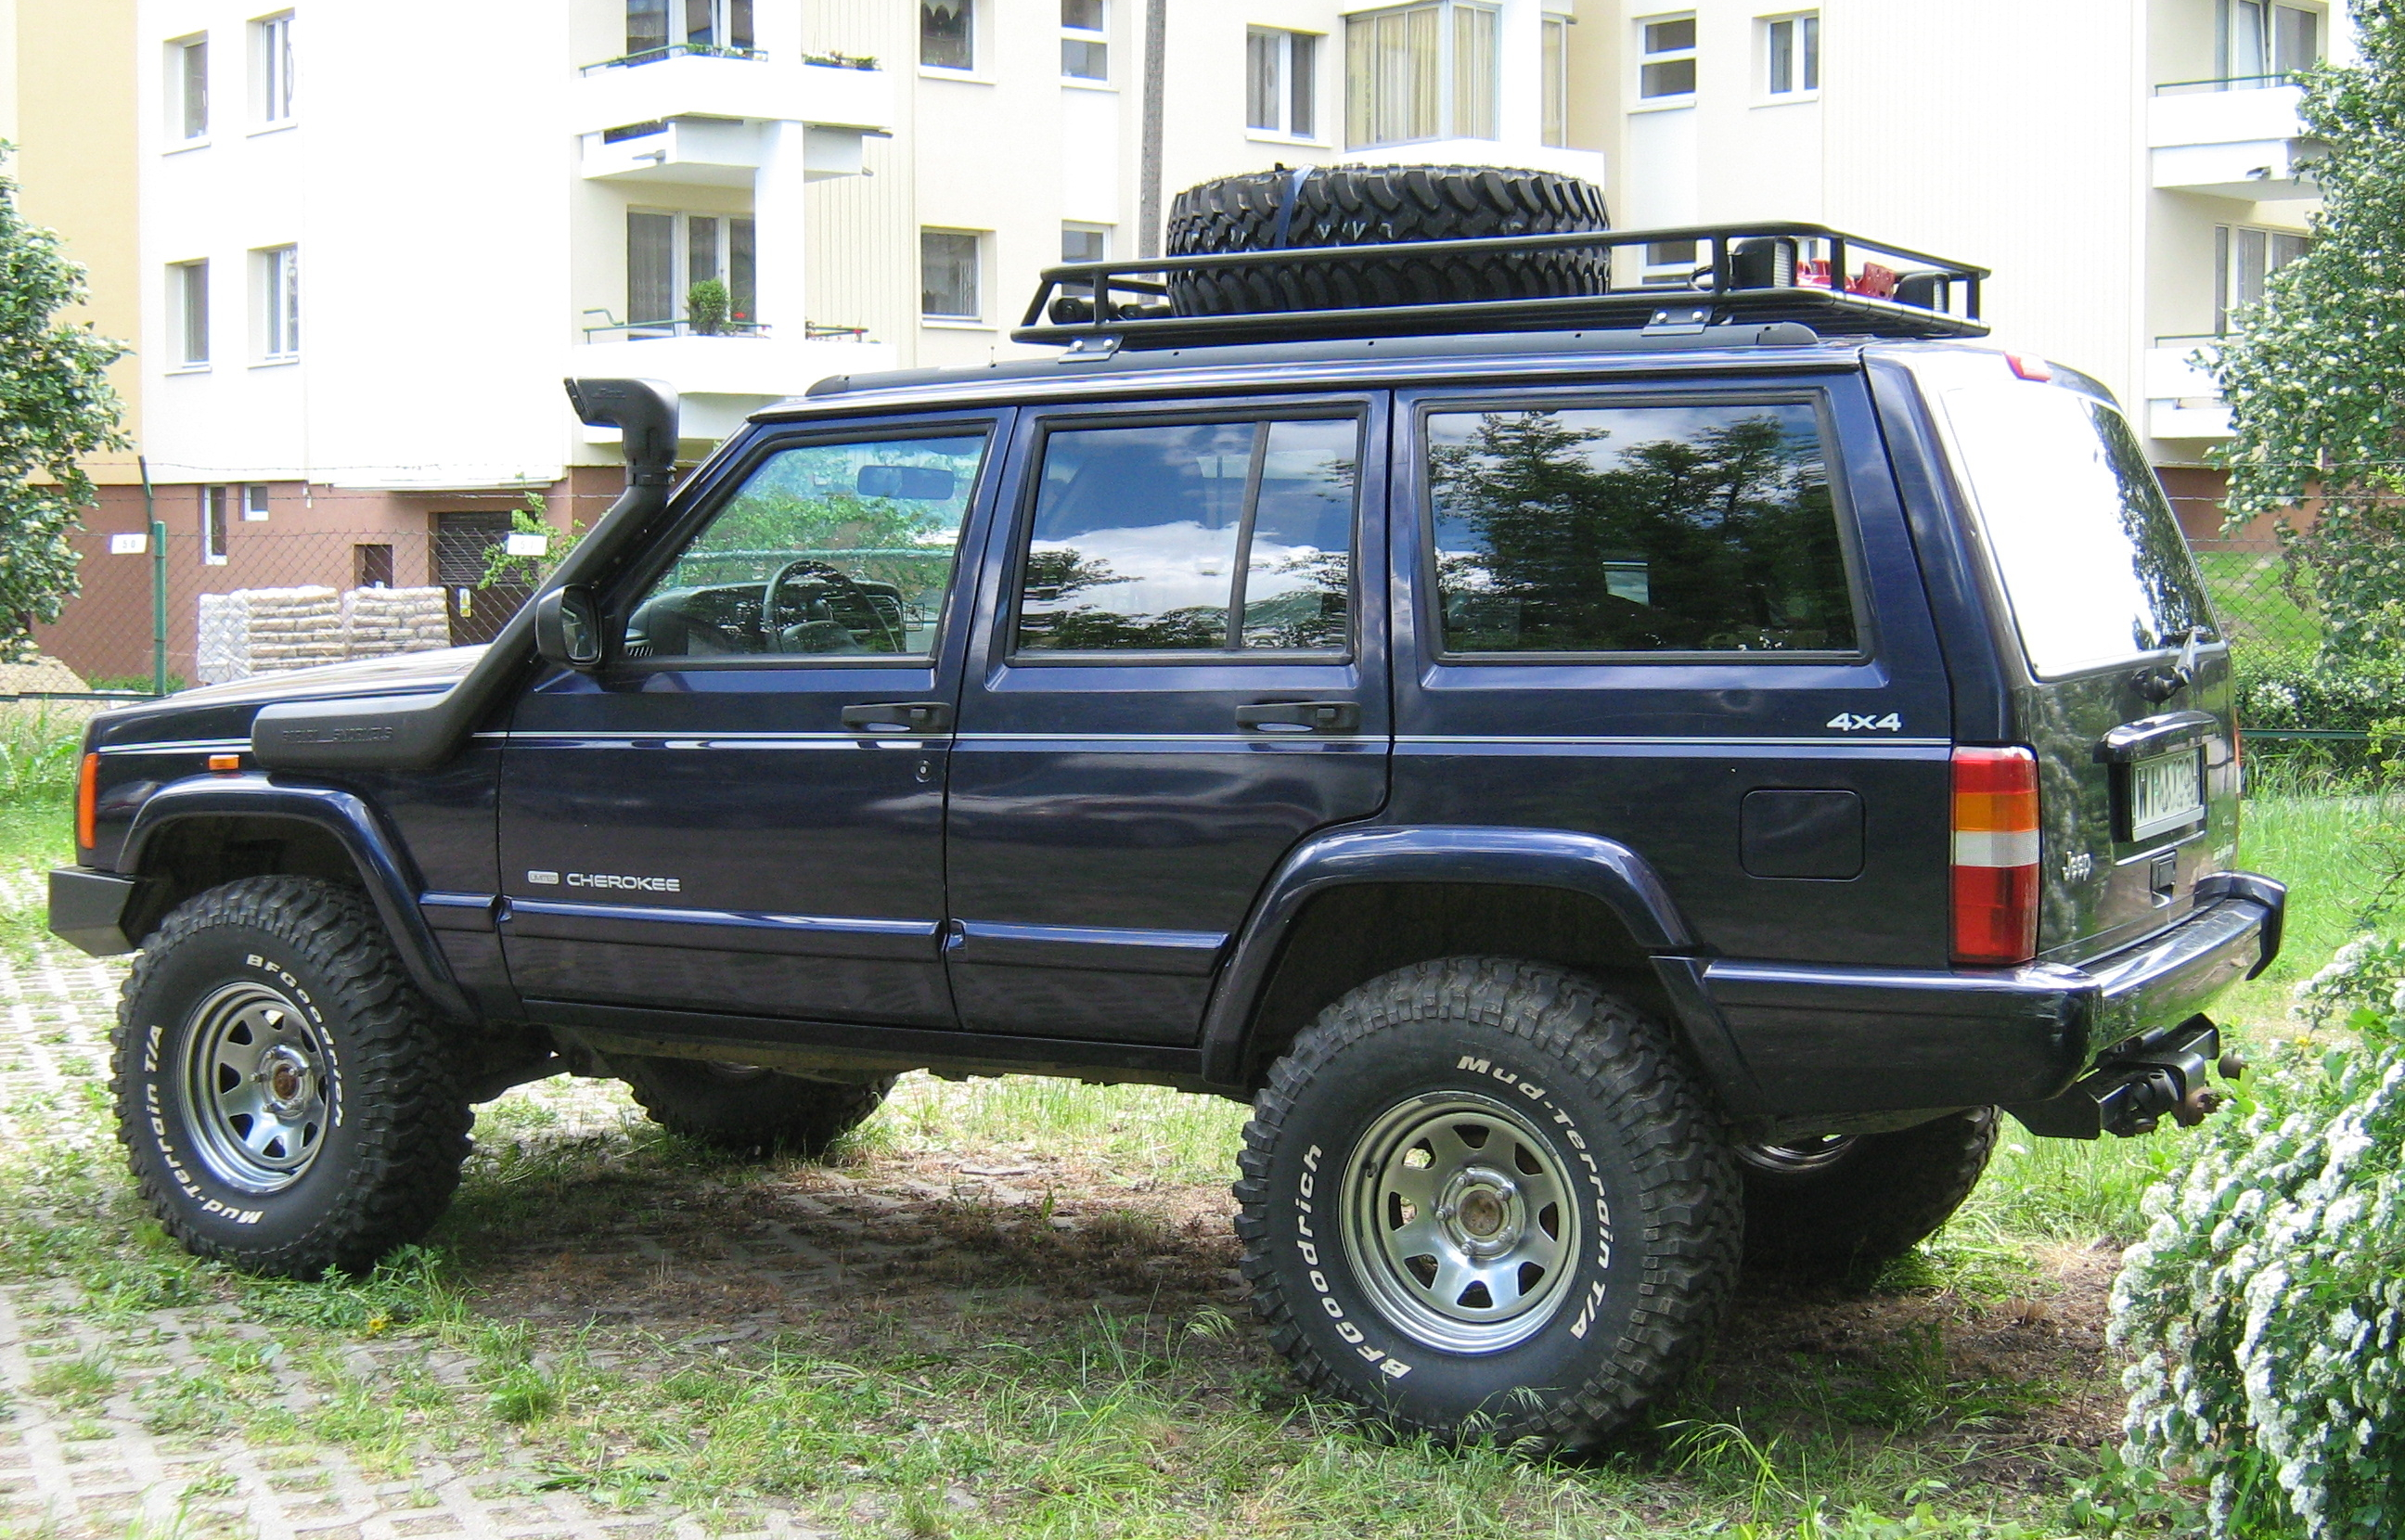 file:jeep cherokee xj lifted blue warsaw apartment parking